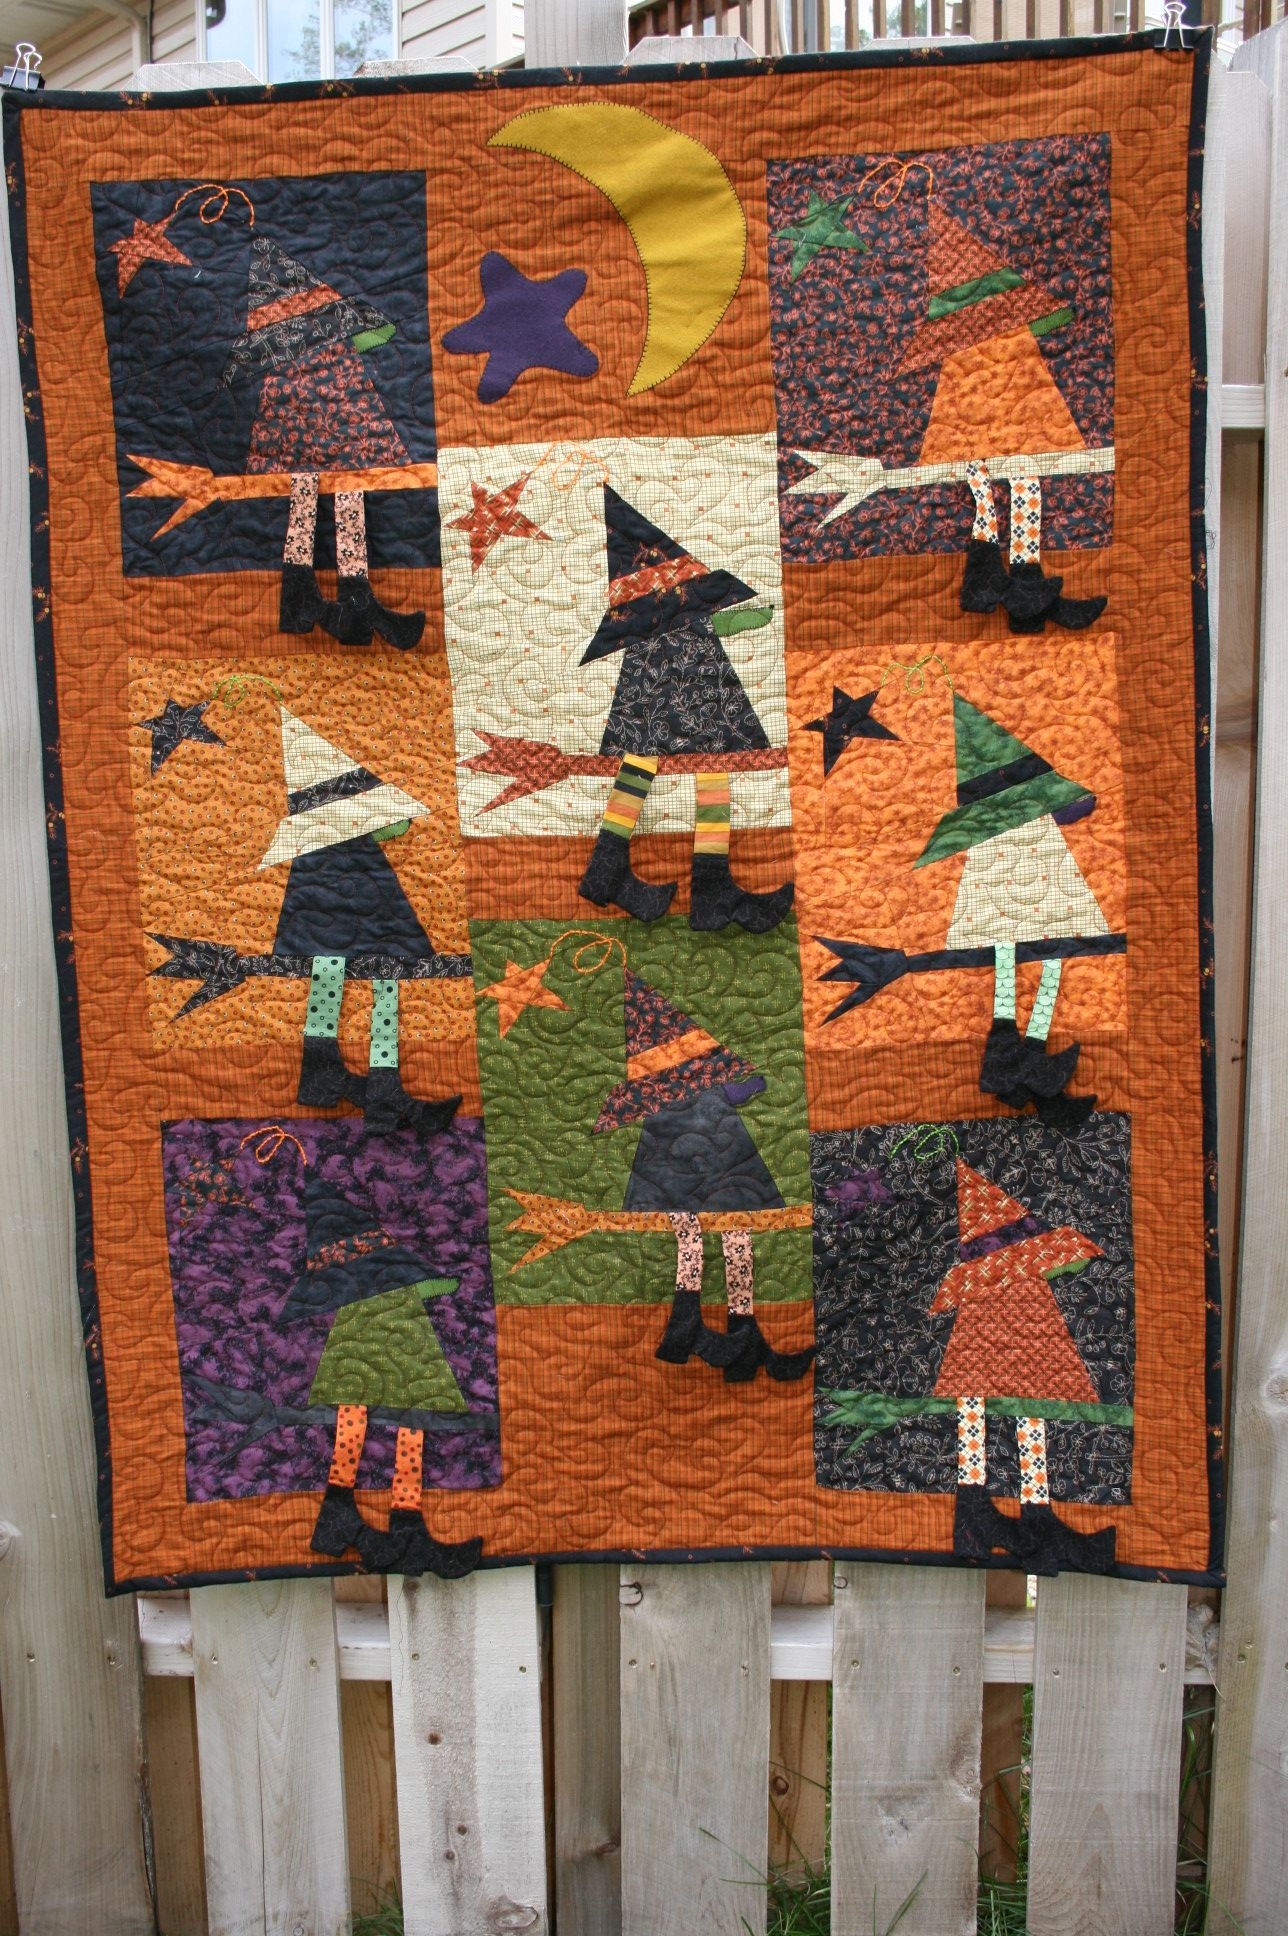 Buggy Barn Quilts Patterns : buggy, quilts, patterns, Quilt, Name:, Pattern, Book:, Frightfully, Crazy, Buggy, Patterns,